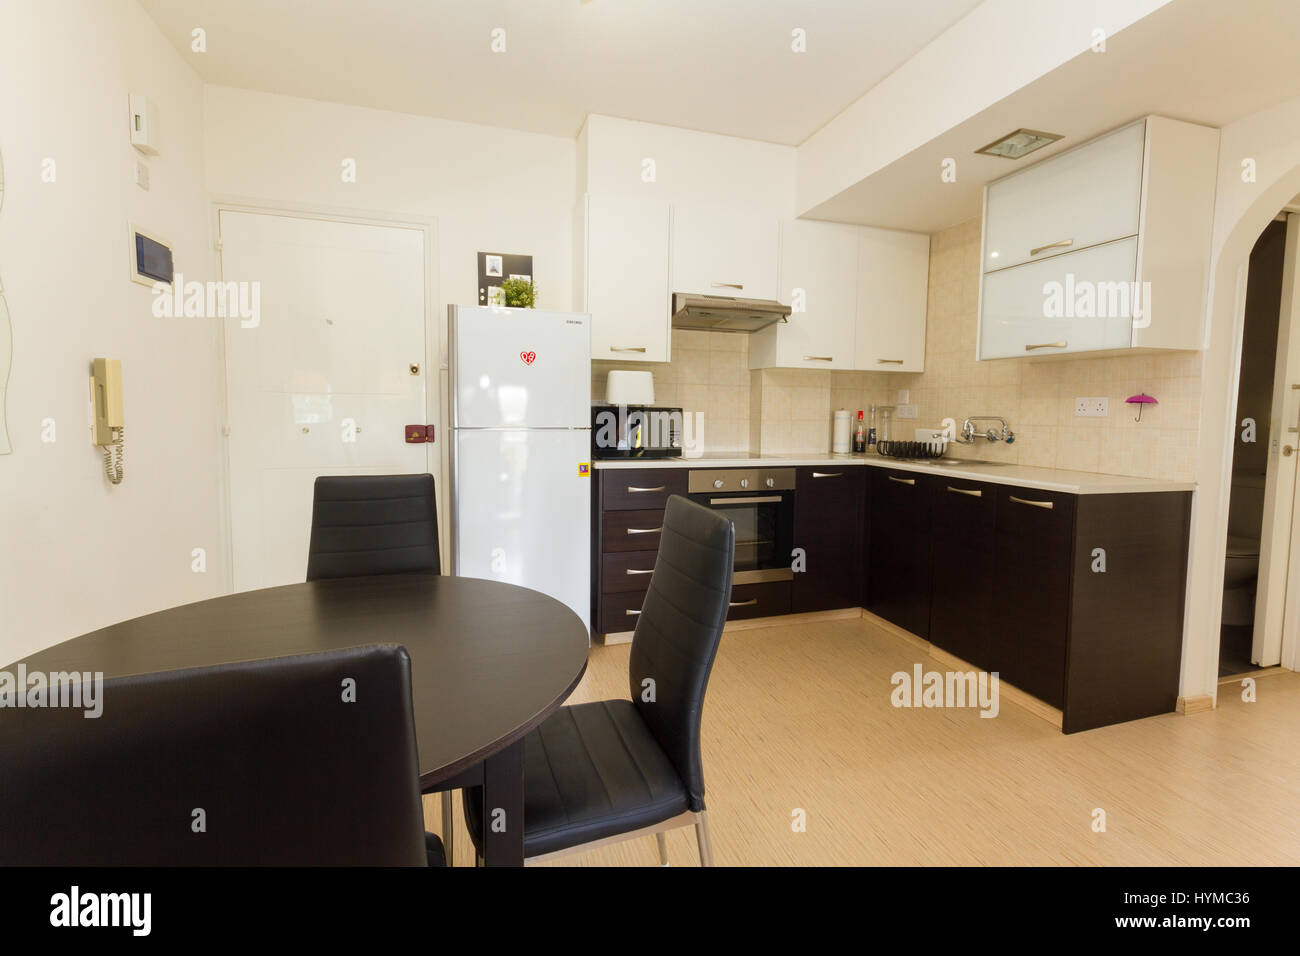 Modern Kitchen in Wenge and White colors containing table, chair, home appliances and benches - Stock Image